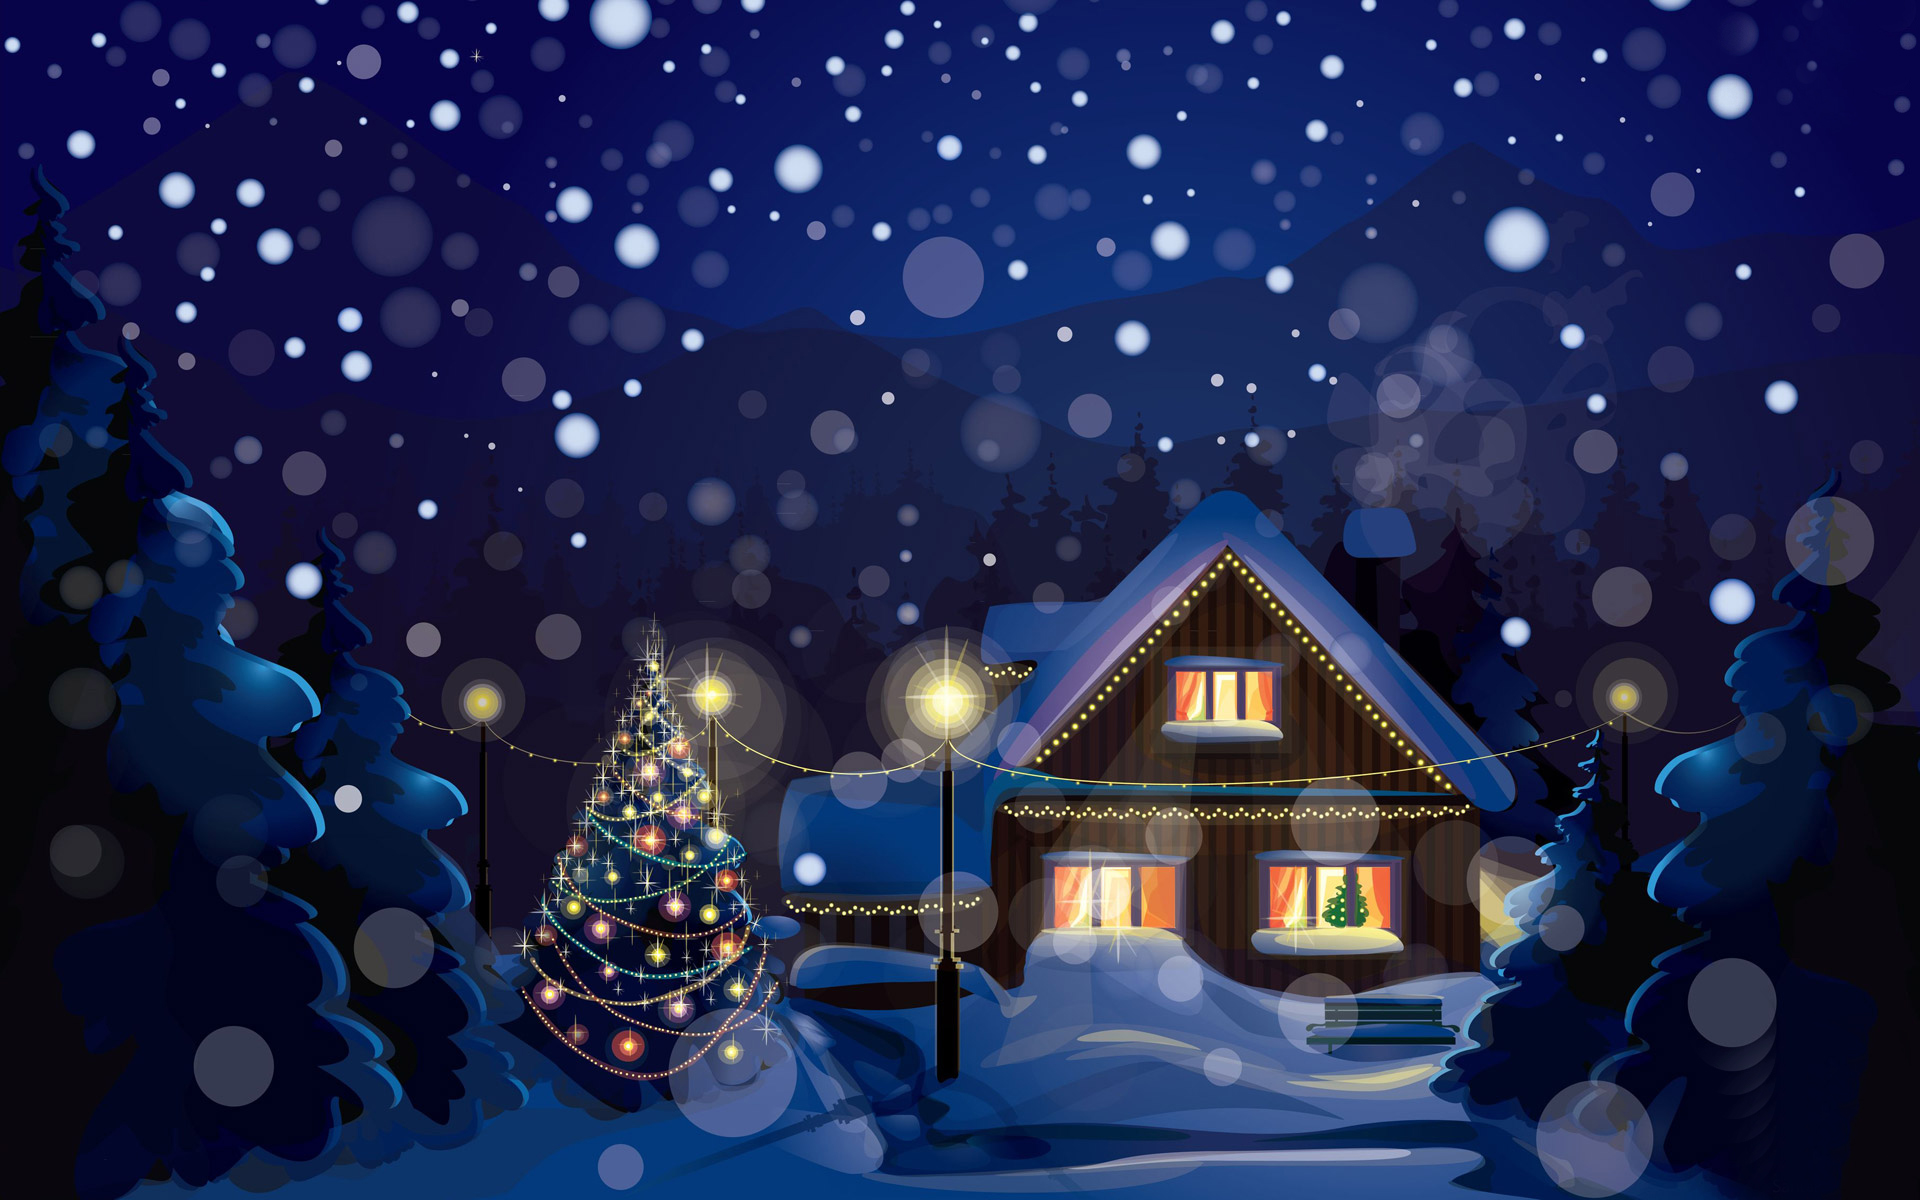 Christmas house wallpaper wallpapersafari for Wallpaper for house decoration